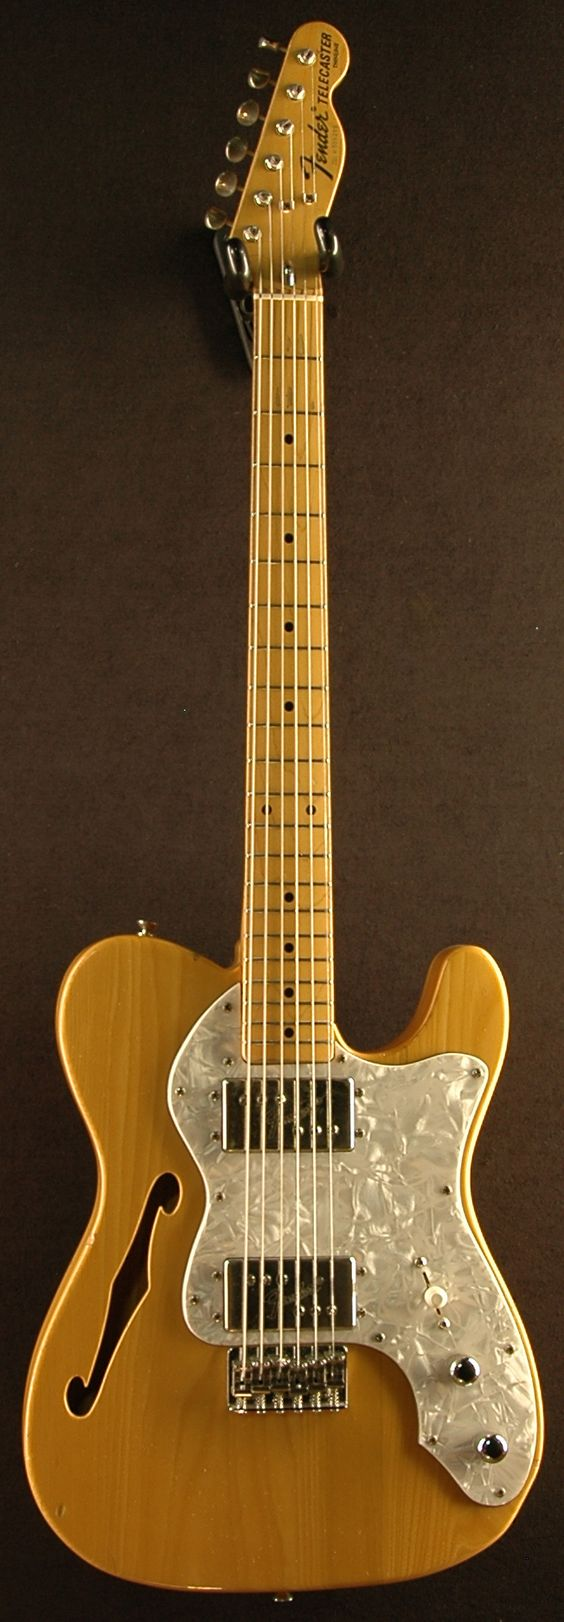 1968 Fender Thinline Telecaster; one of a very limited family of instruments that warrant the use of the Humbucker Style pickup.